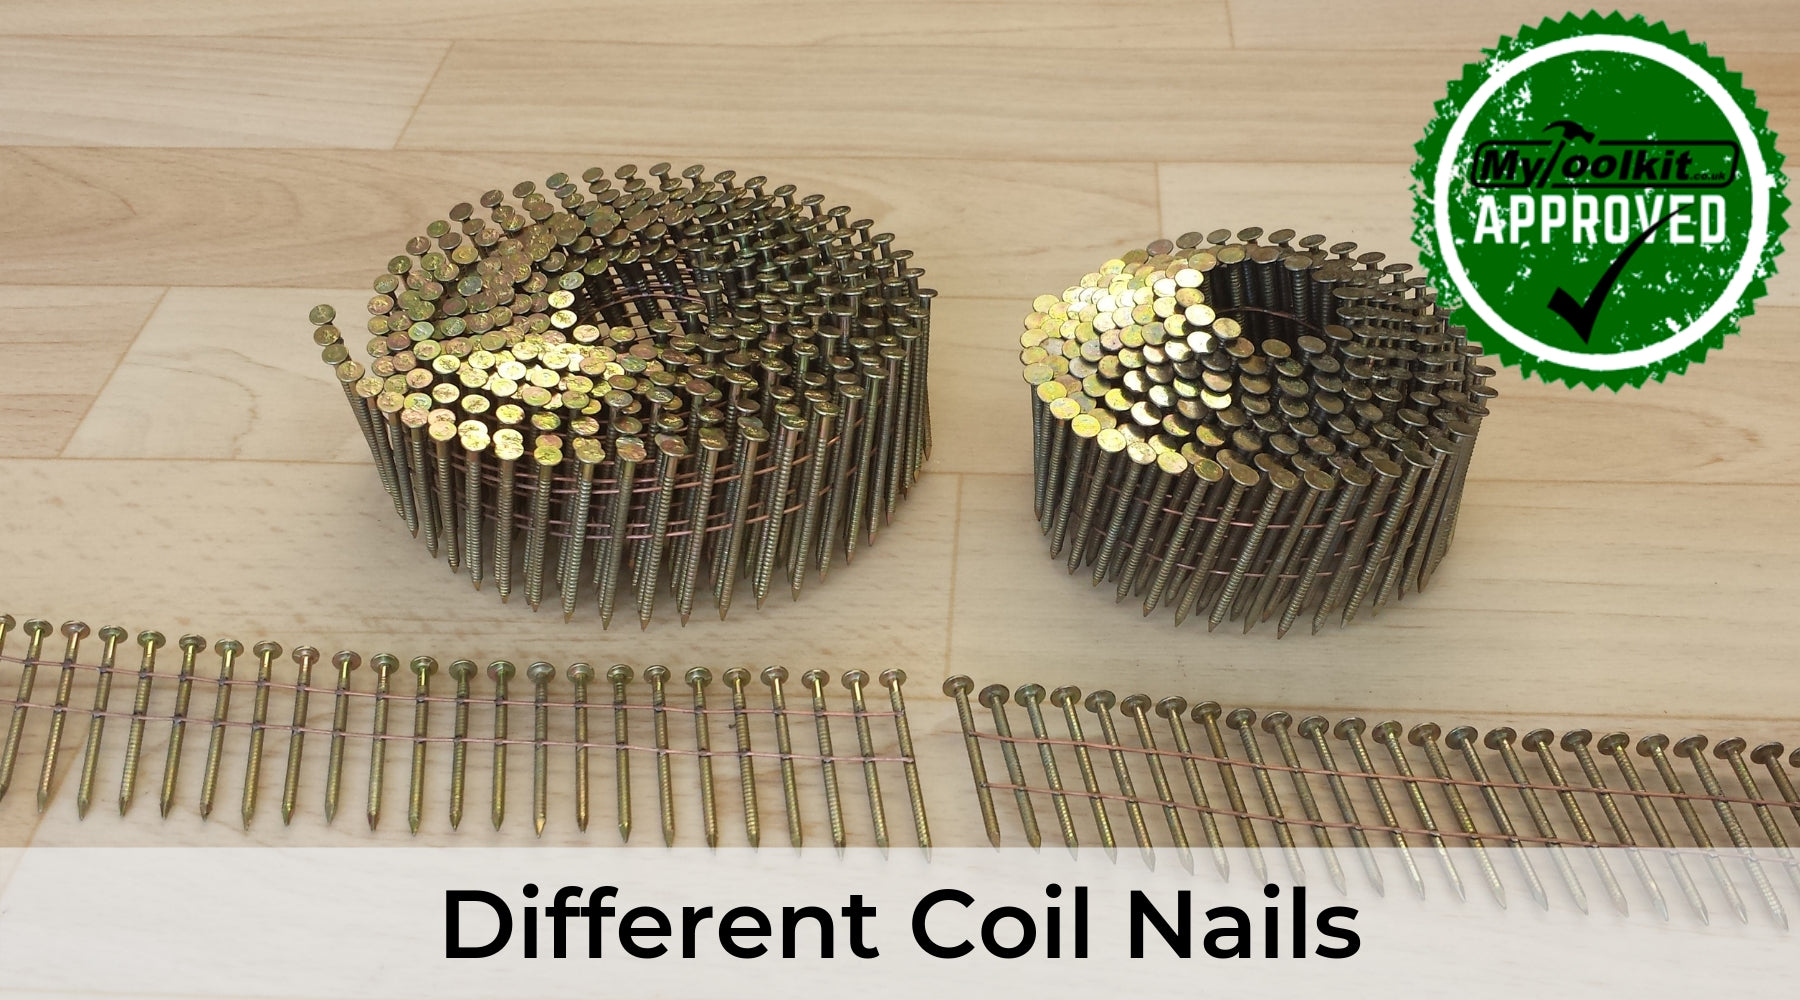 Can someone explain the different coils